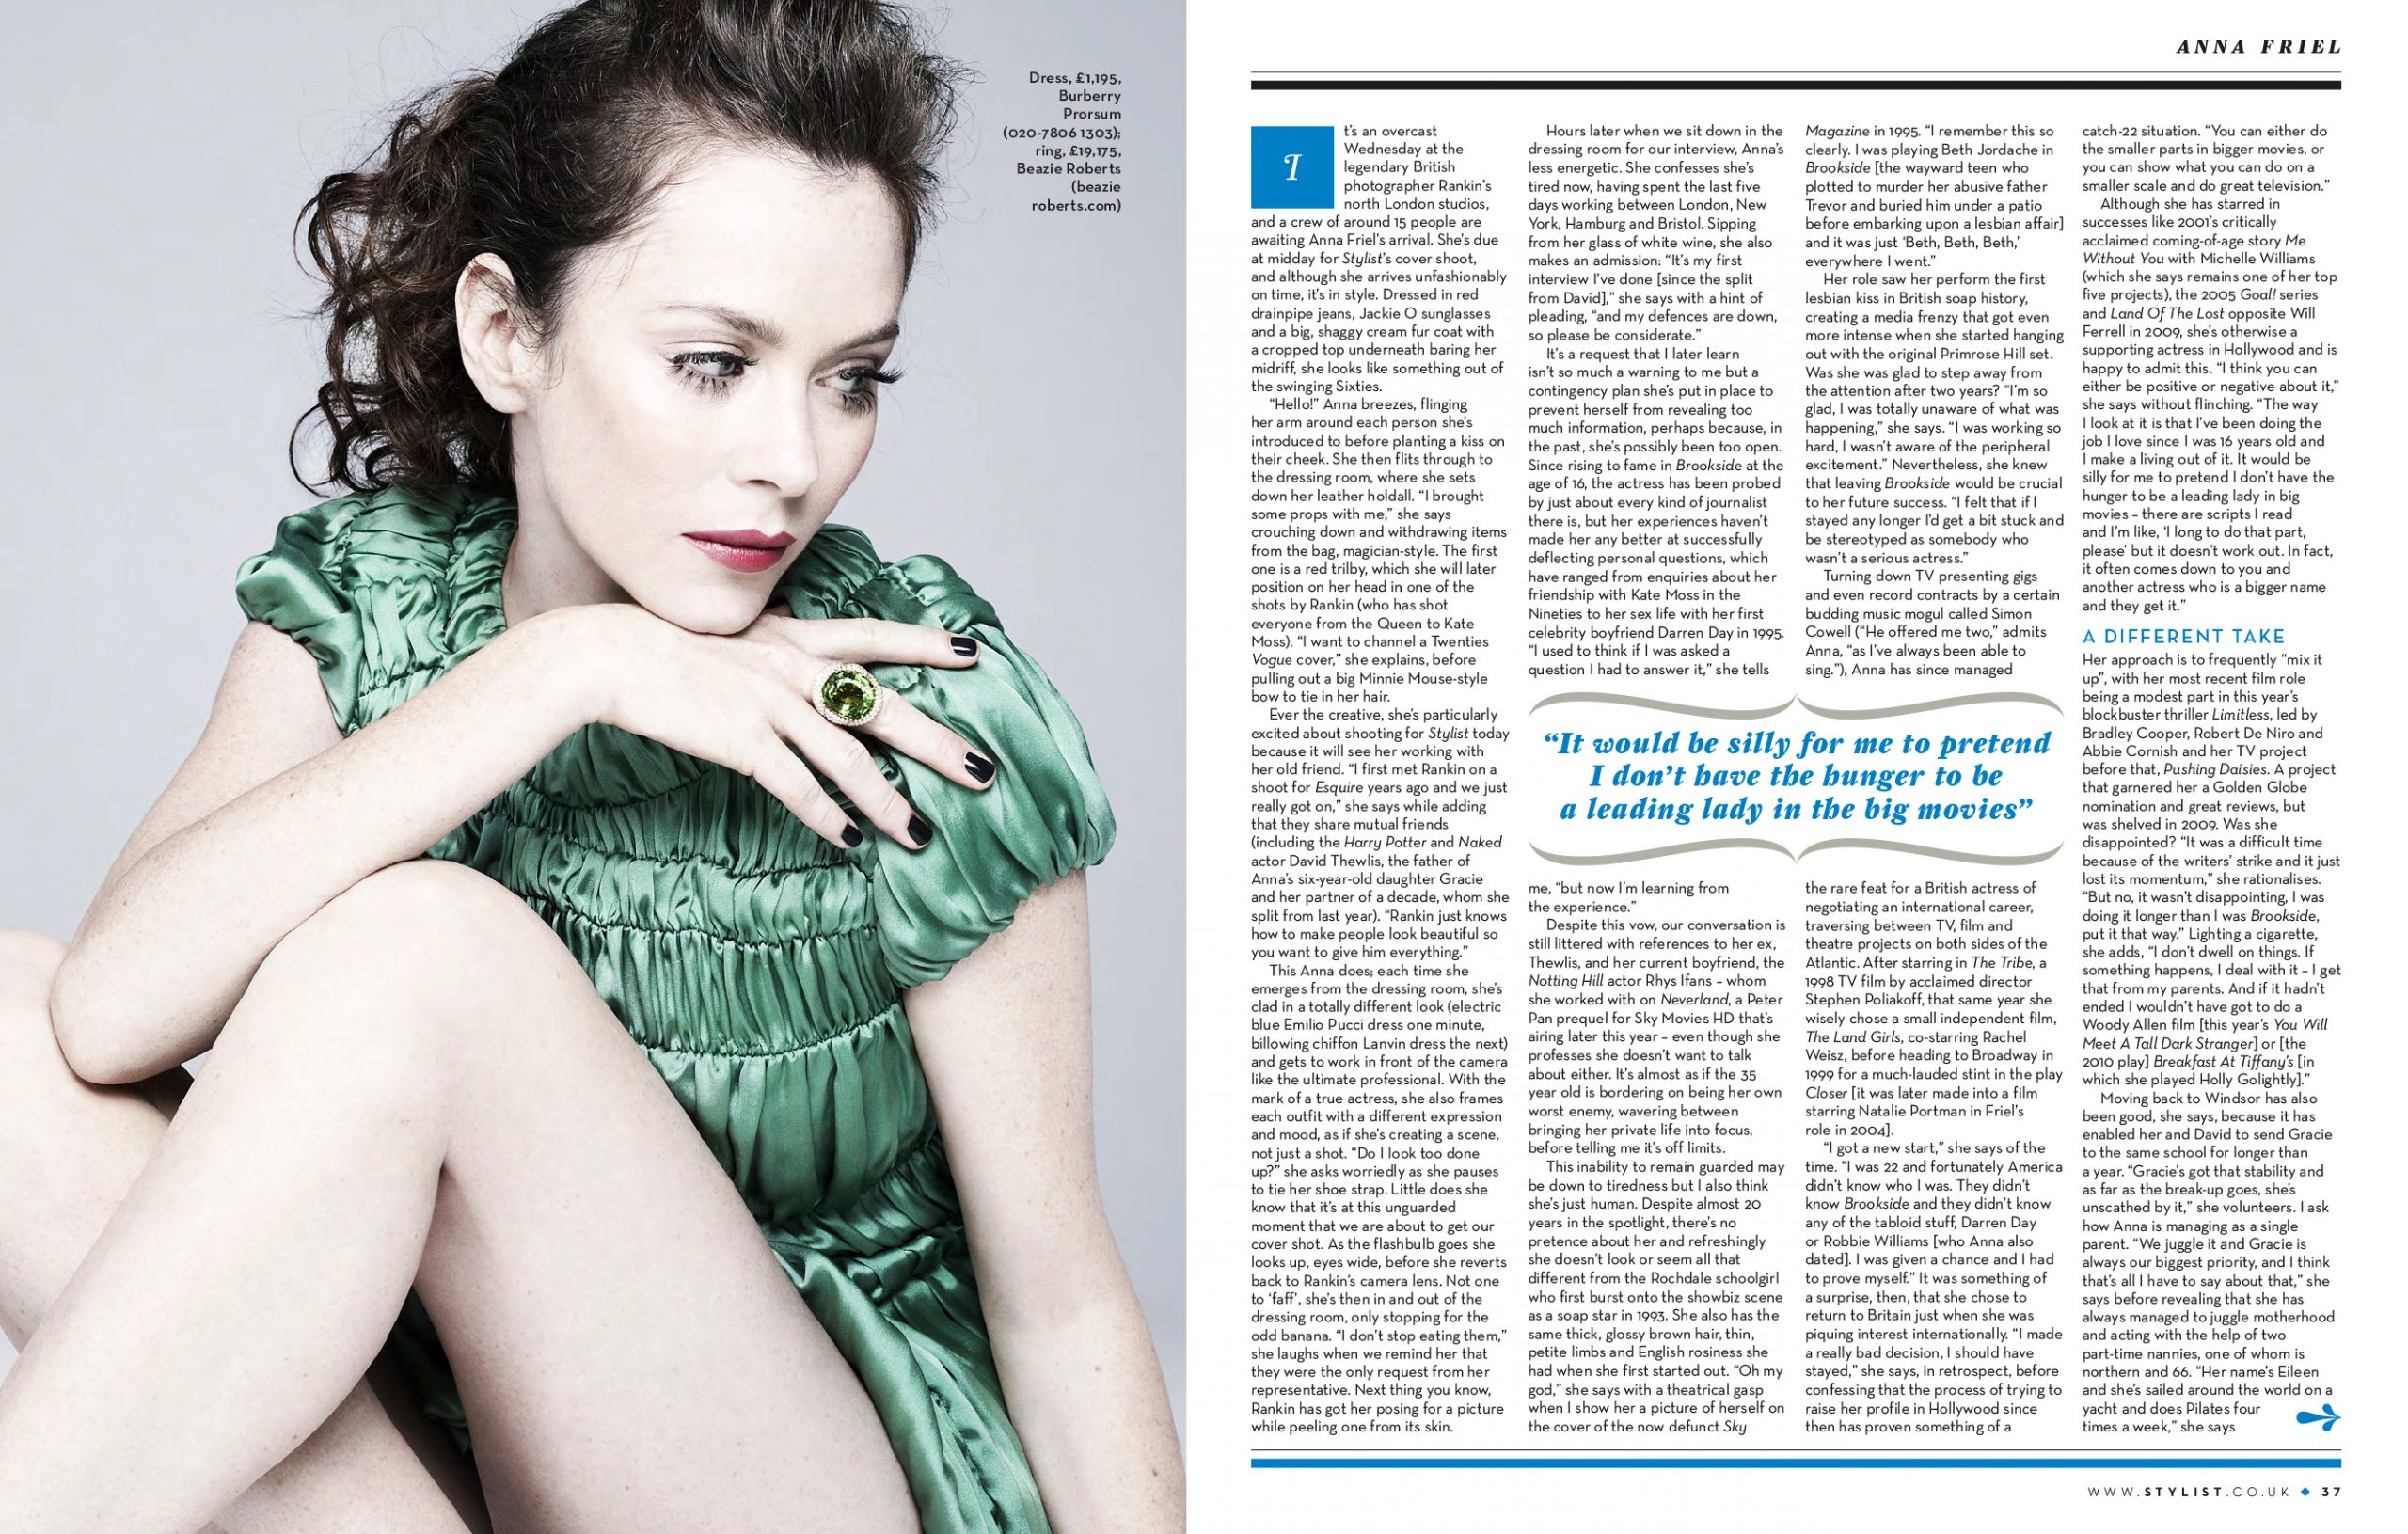 ANNA-FRIEL-Feature-2